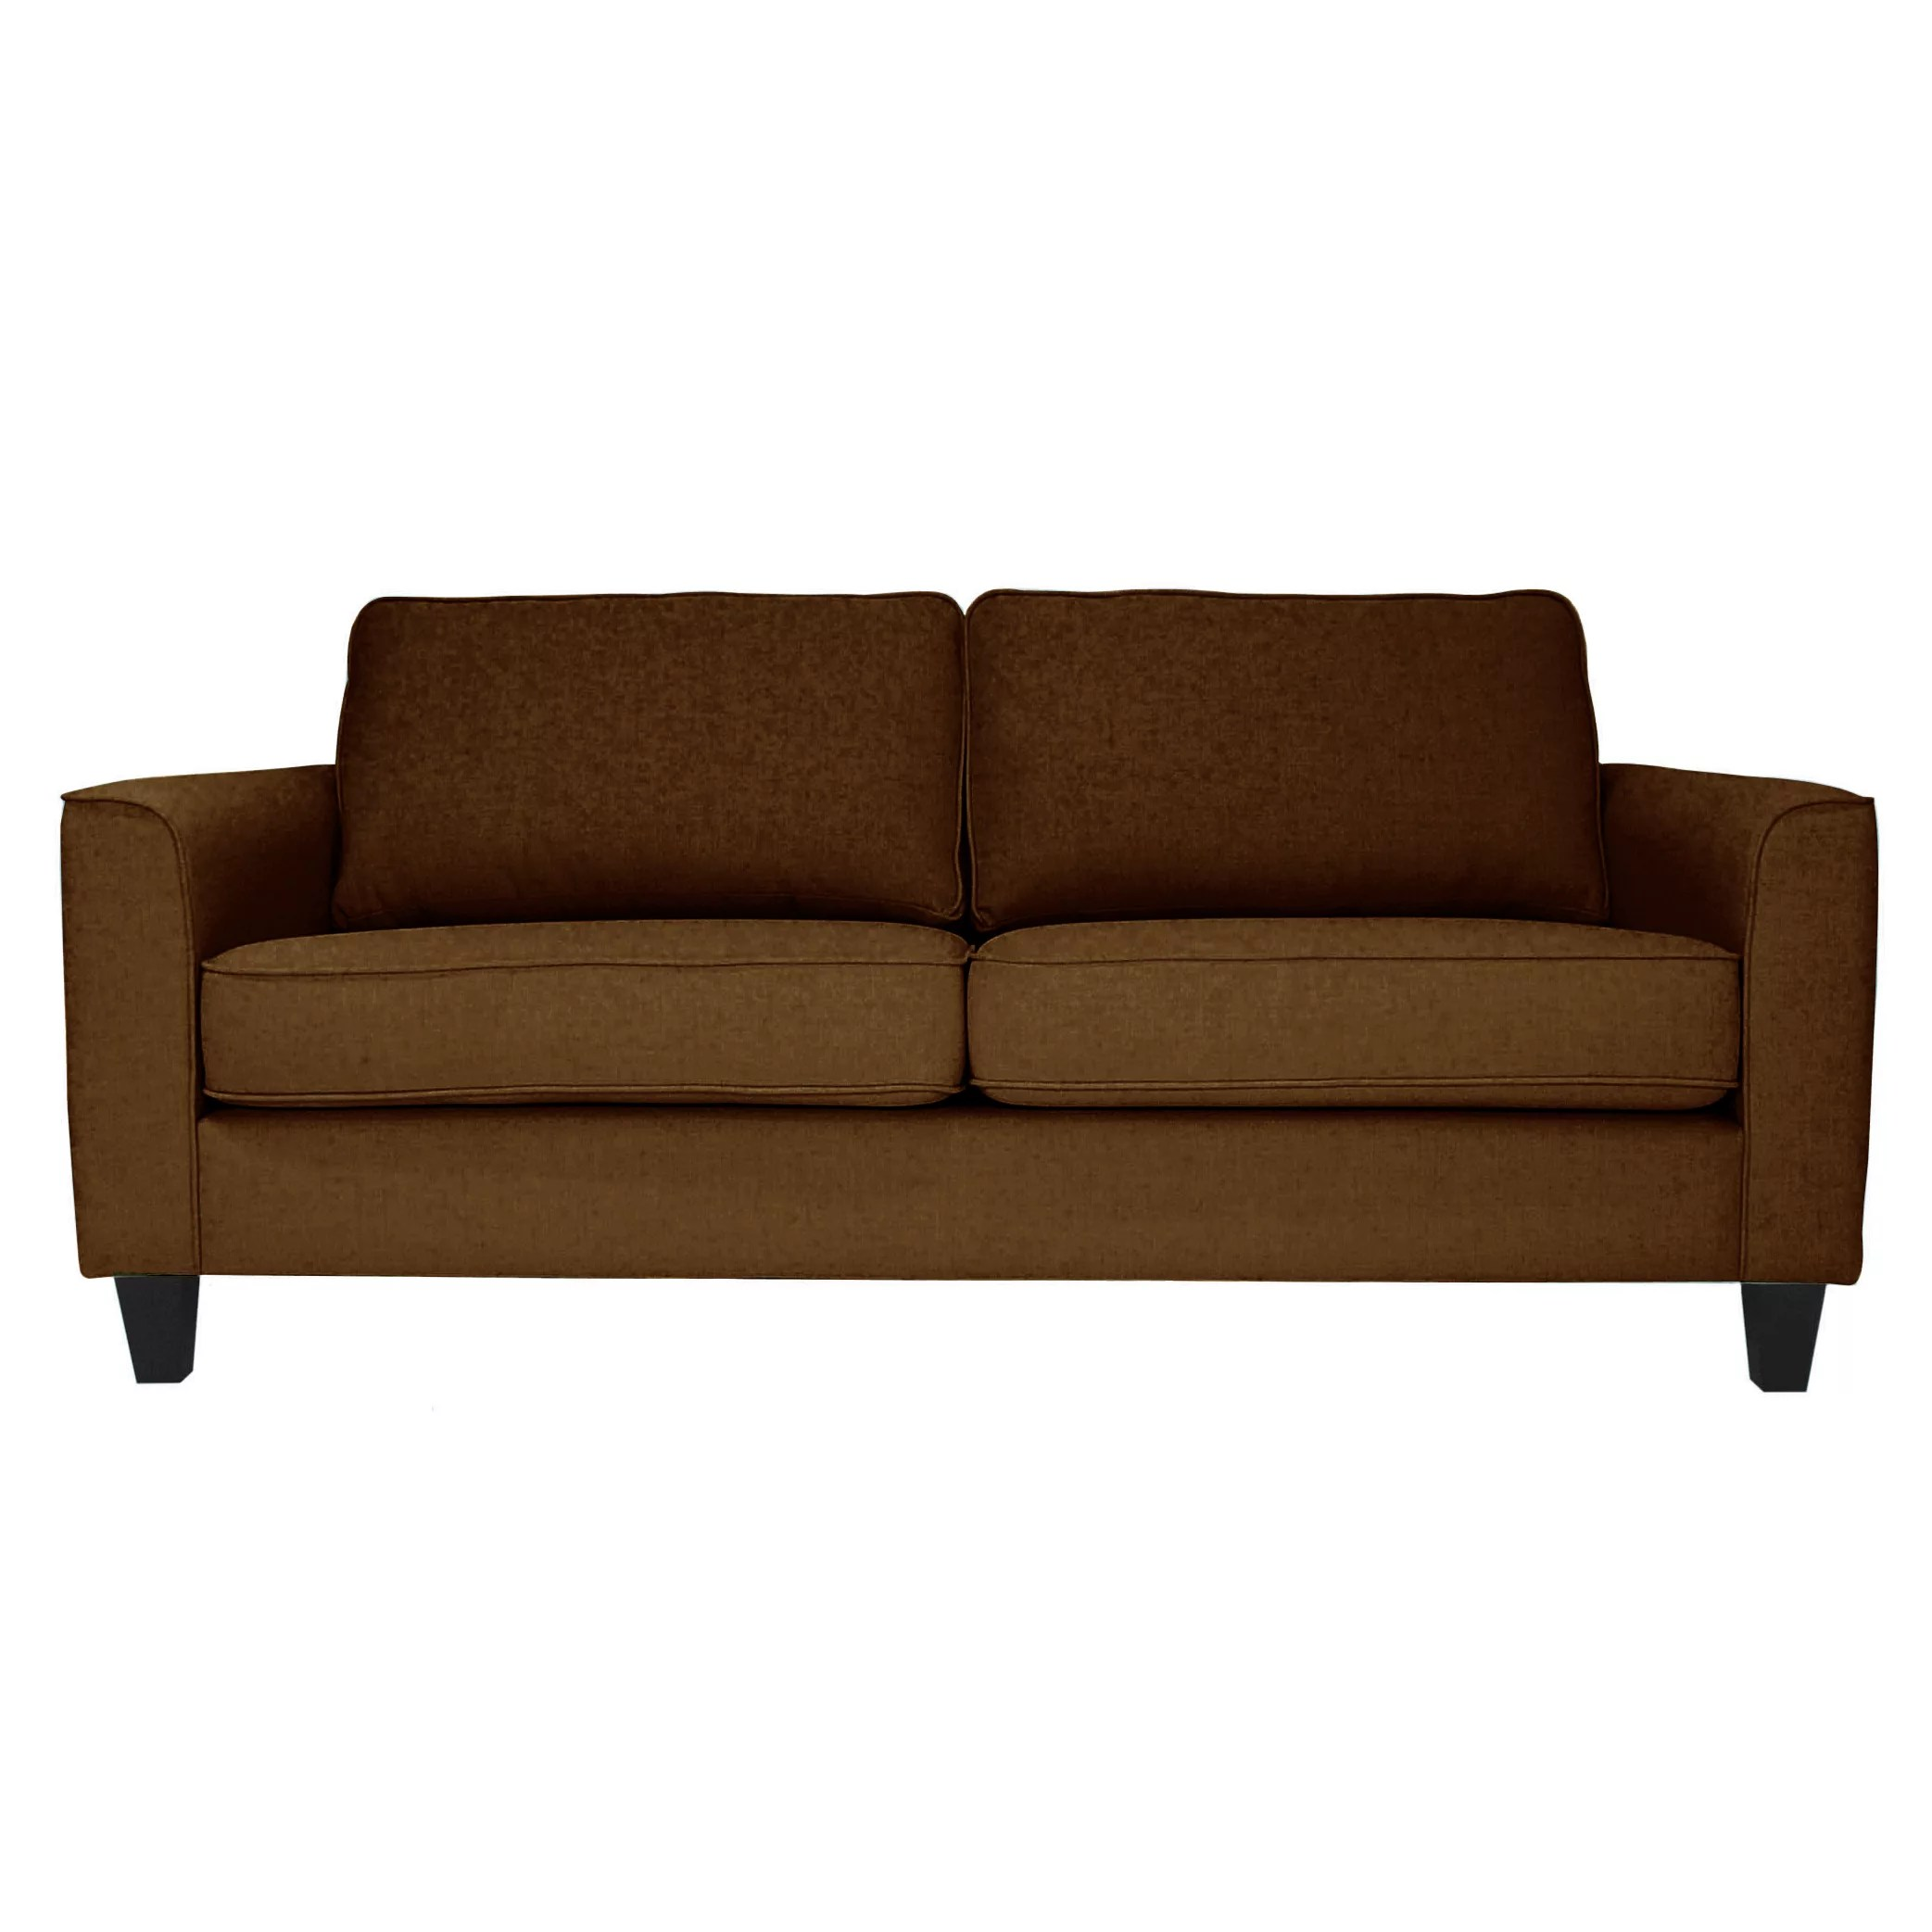 john lewis sofa bed images of set beds reviews